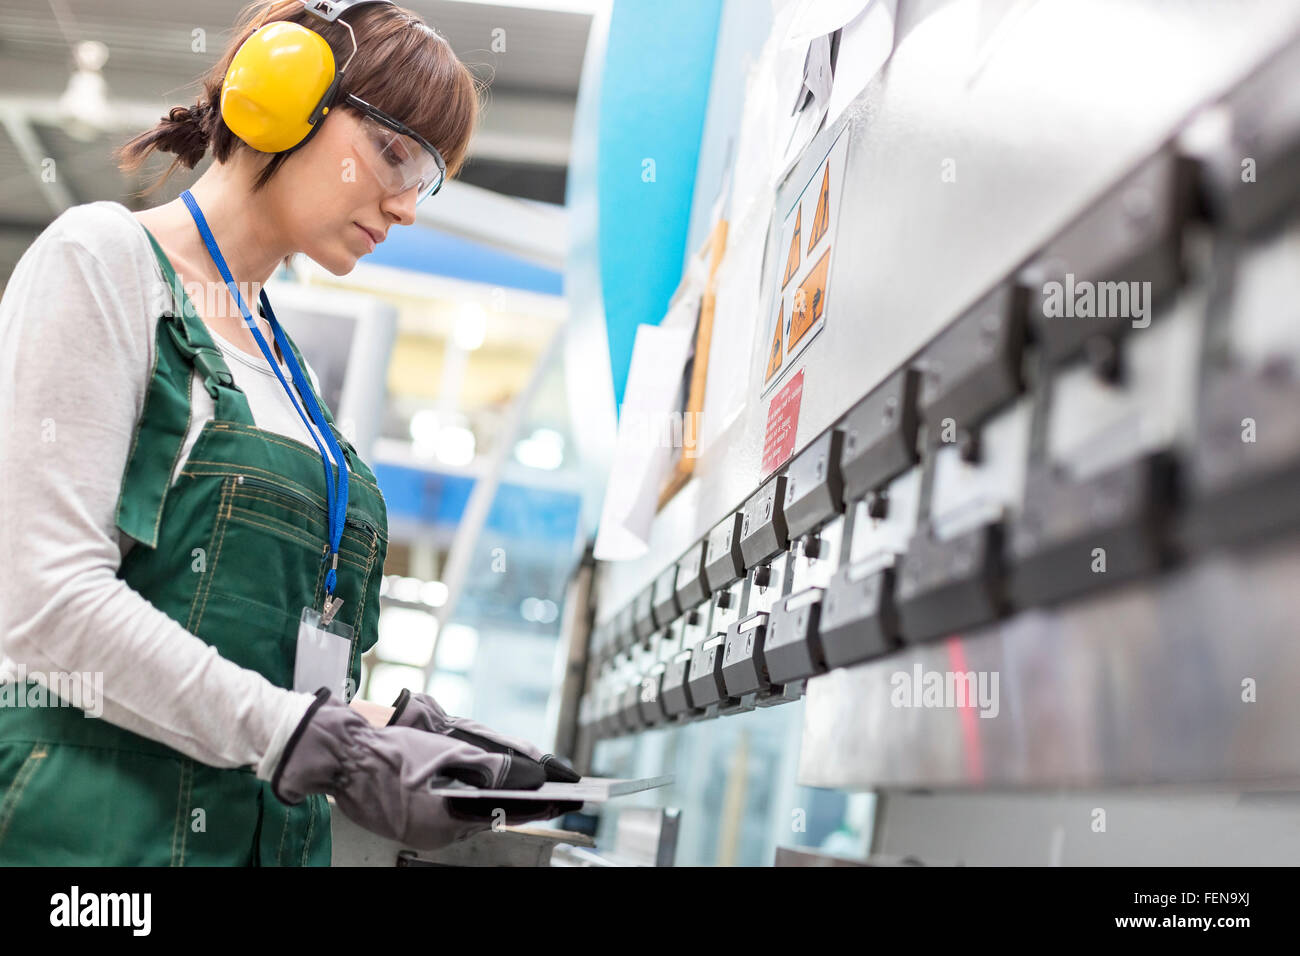 Female worker working in factory - Stock Image